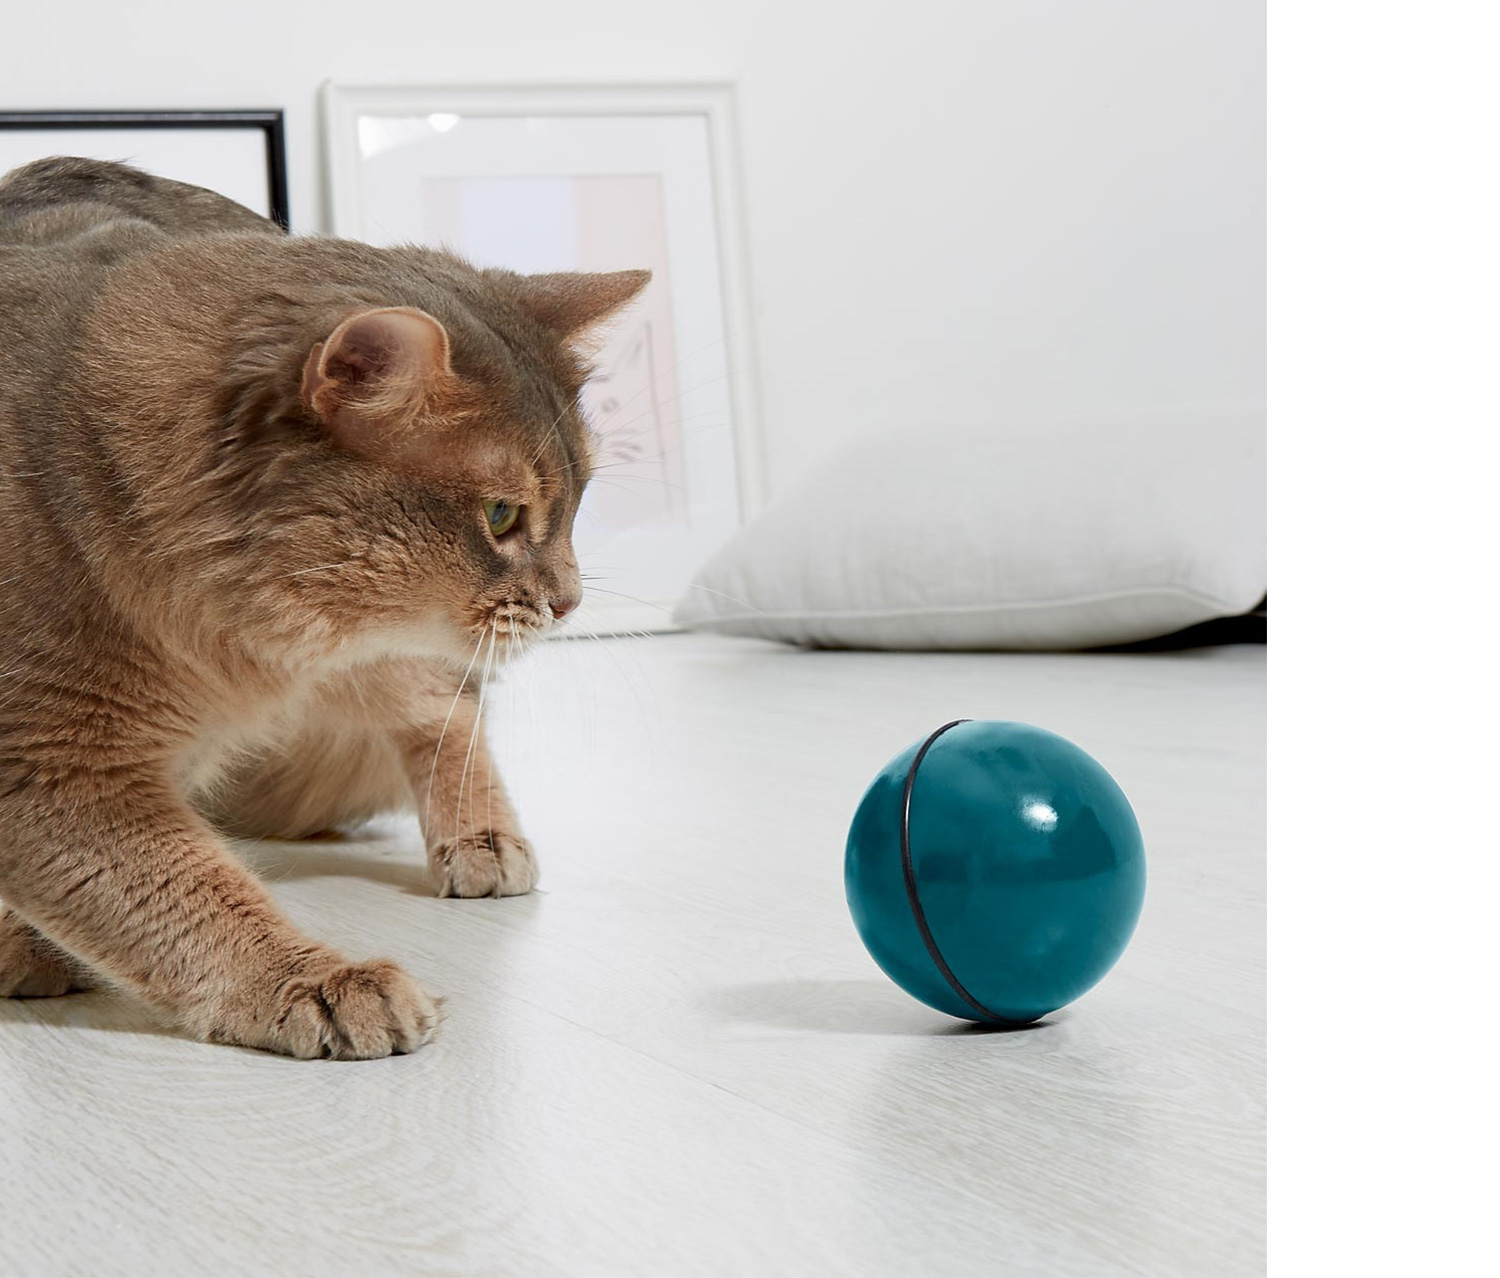 Random Moving Ball Cat Toy, Teal